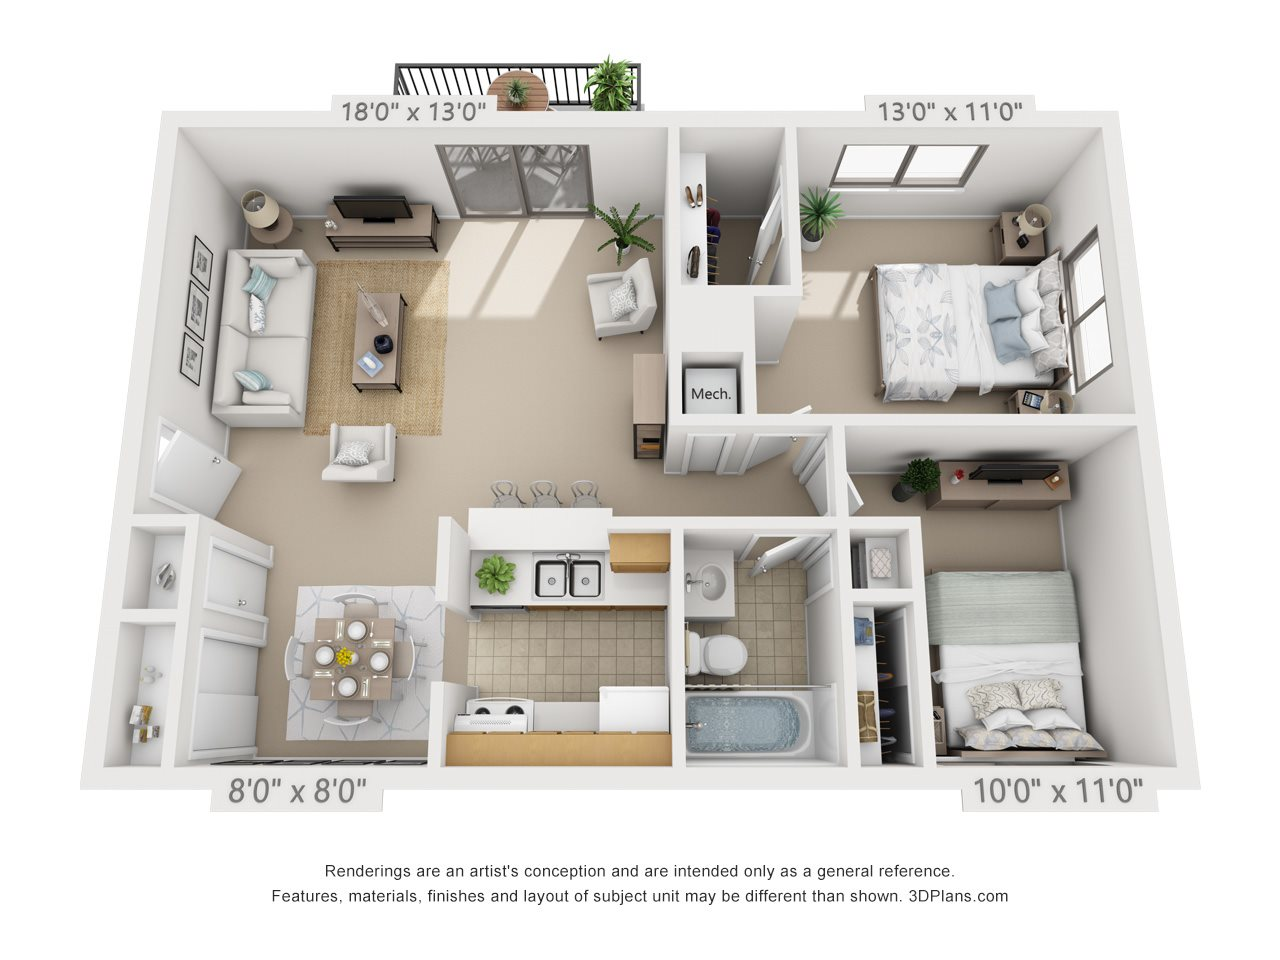 2 Bedroom, 1 Bath (Courtyard View) Floor Plan 6